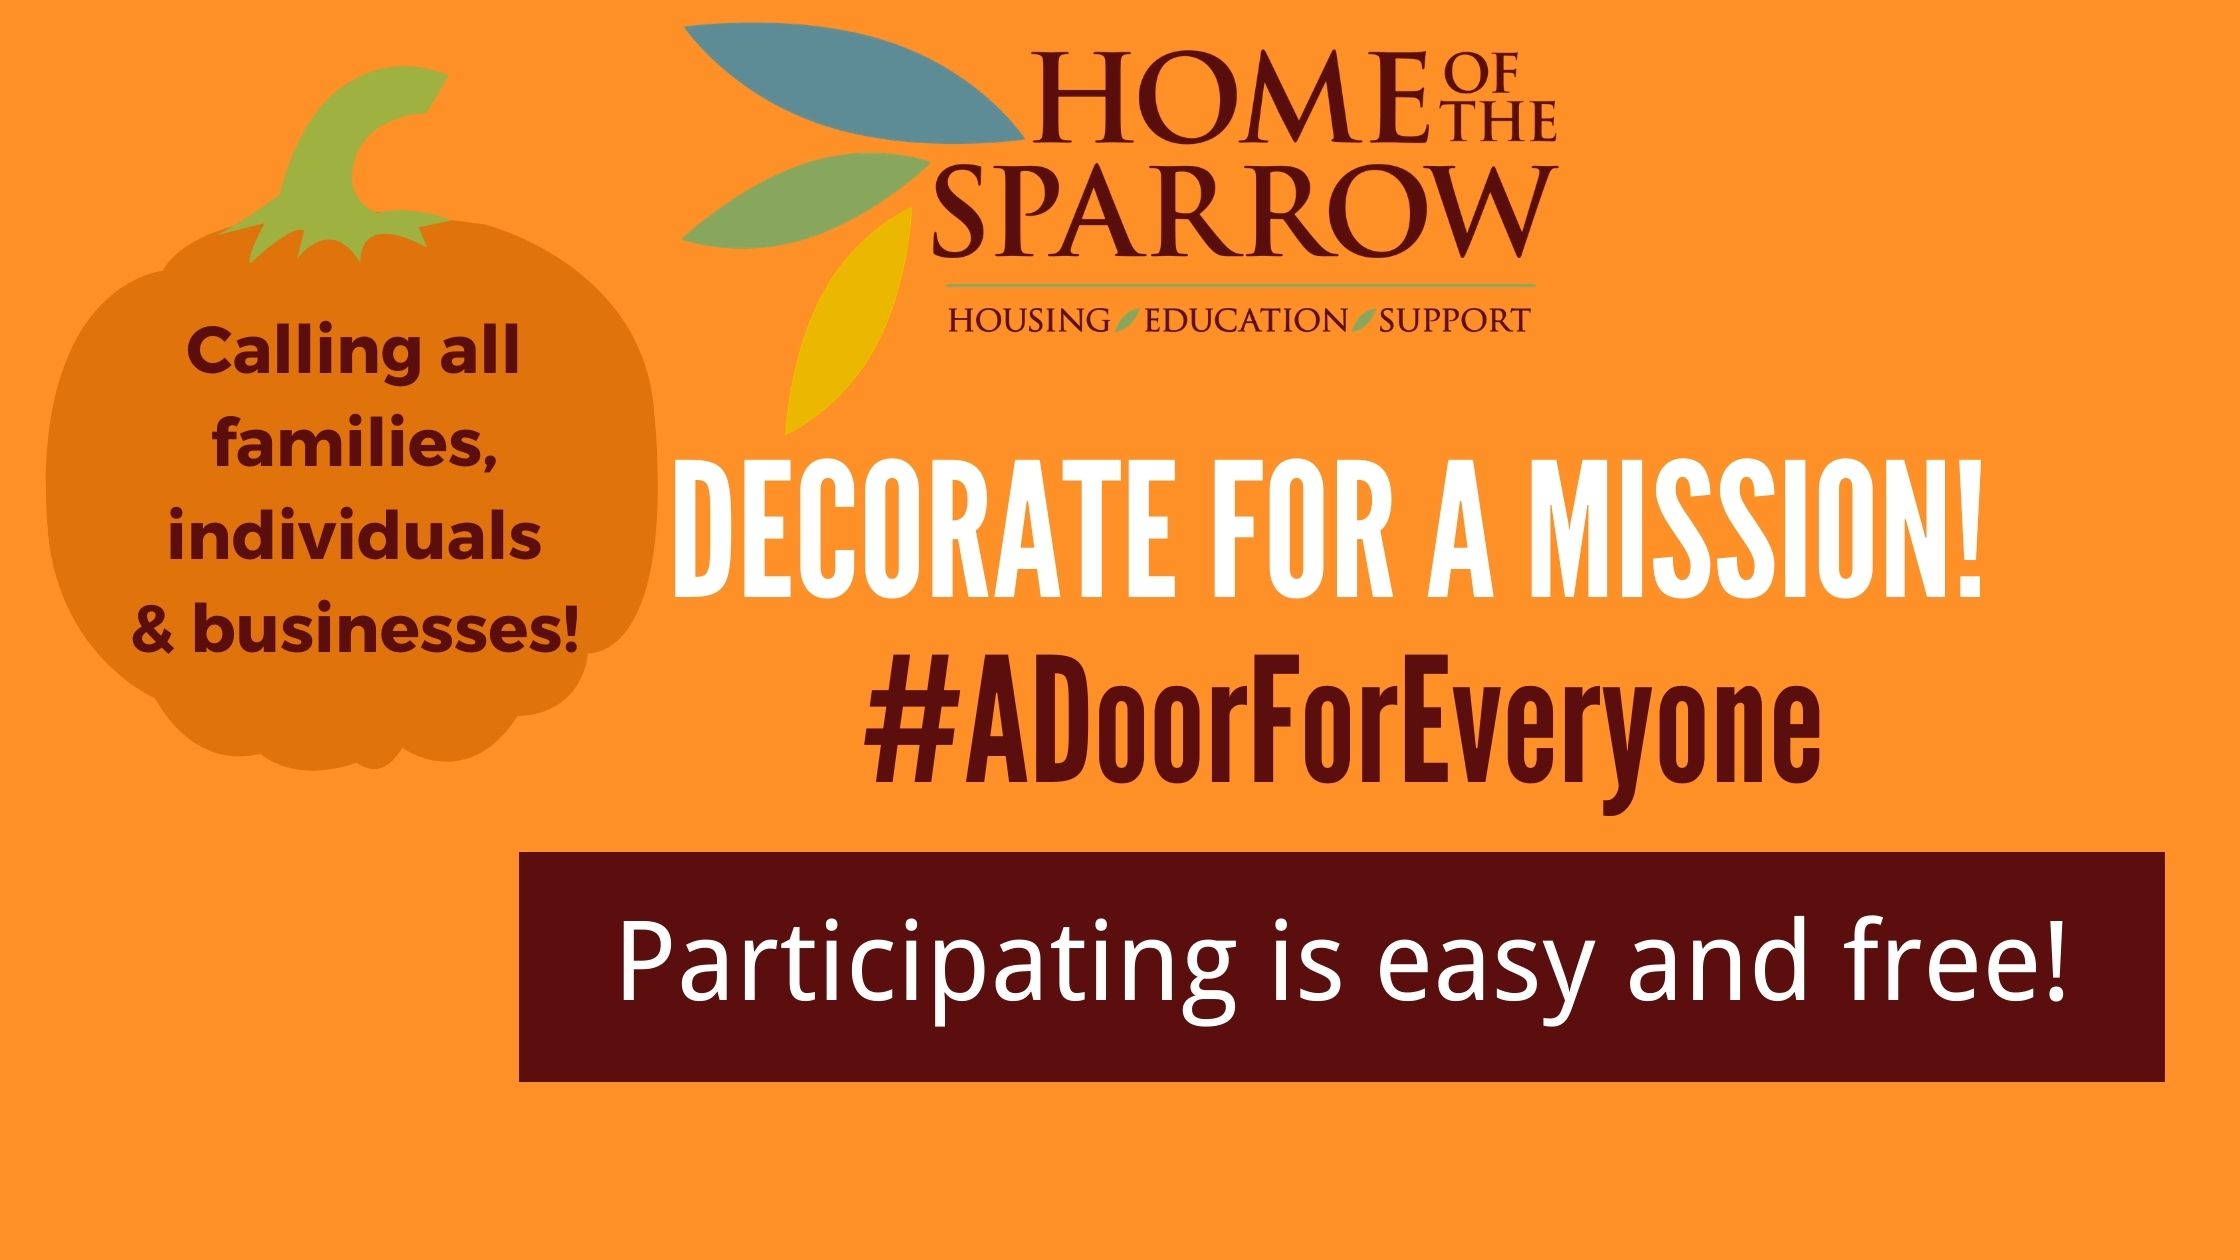 Home of the Sparrow Launches Door-Decorating Contest to Build Community Spirit, Raise Awareness About Housing Insecurity in Chester County